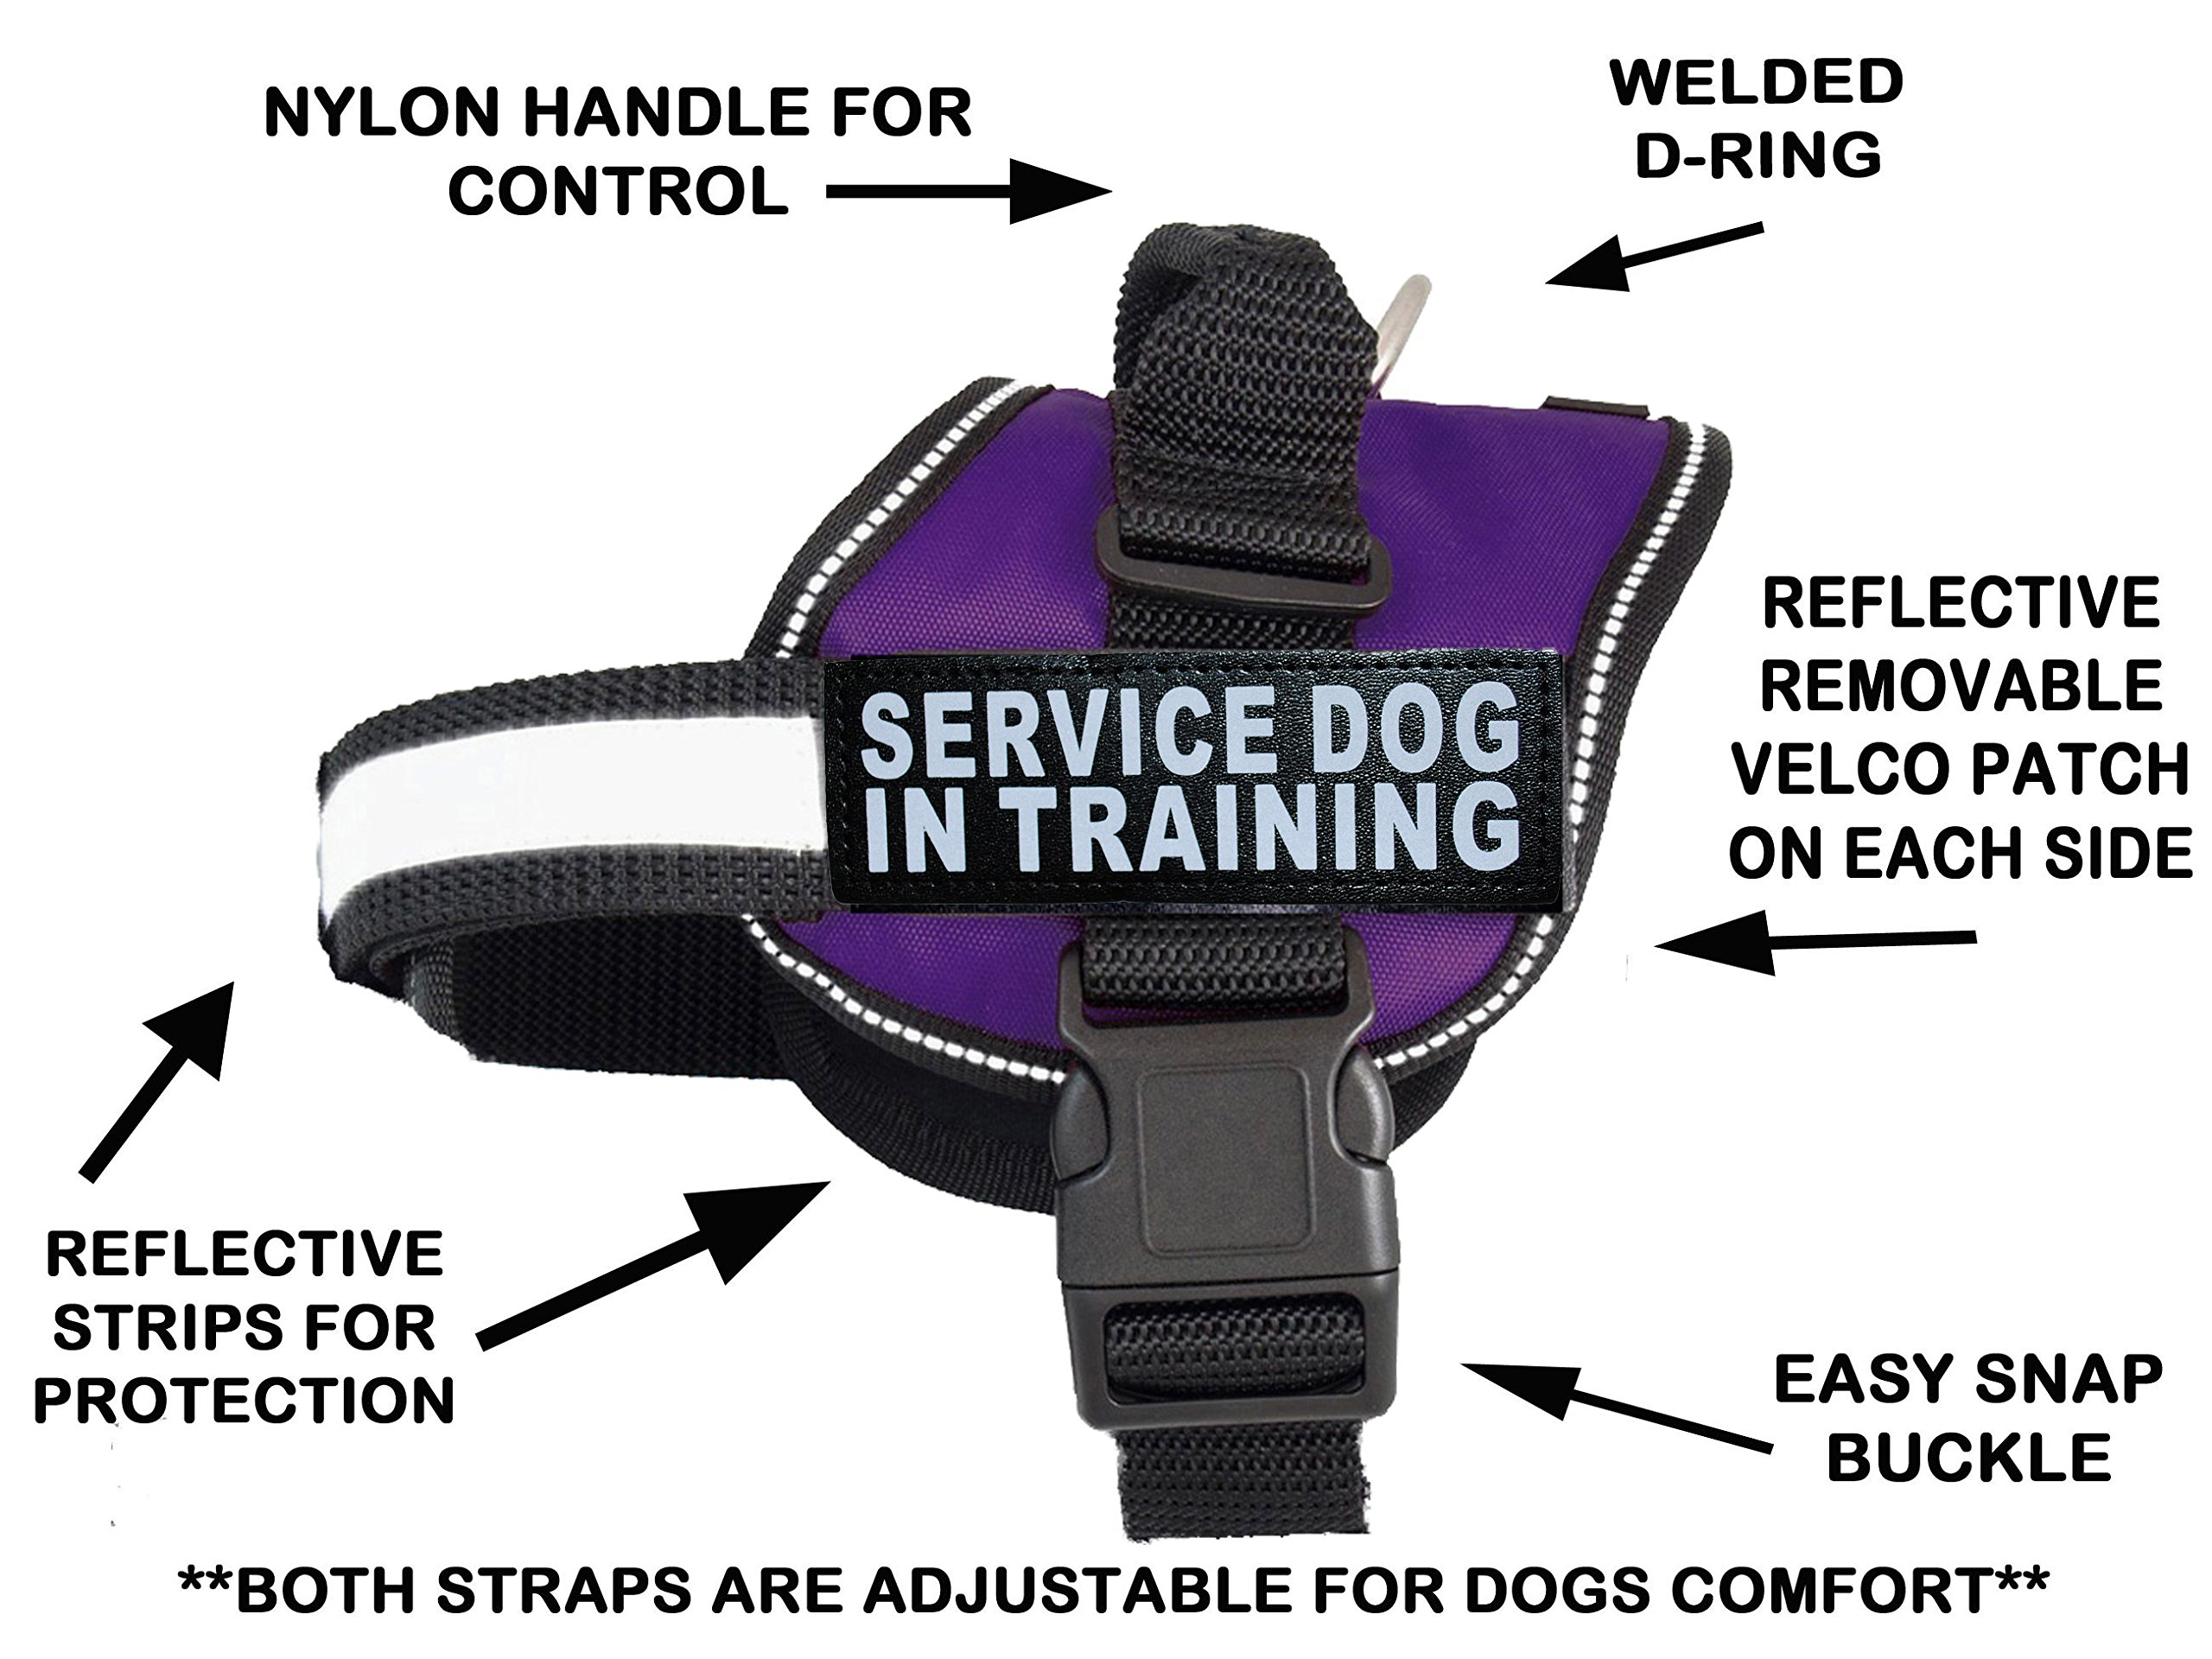 Servcie Dog in Training Nylon Dog Vest Harness. Purchase Comes 2 Reflective Service Dog in Training Velcro pathces. Please Measure Your Dog Before Ordering (Girth 14-18'', Purple)